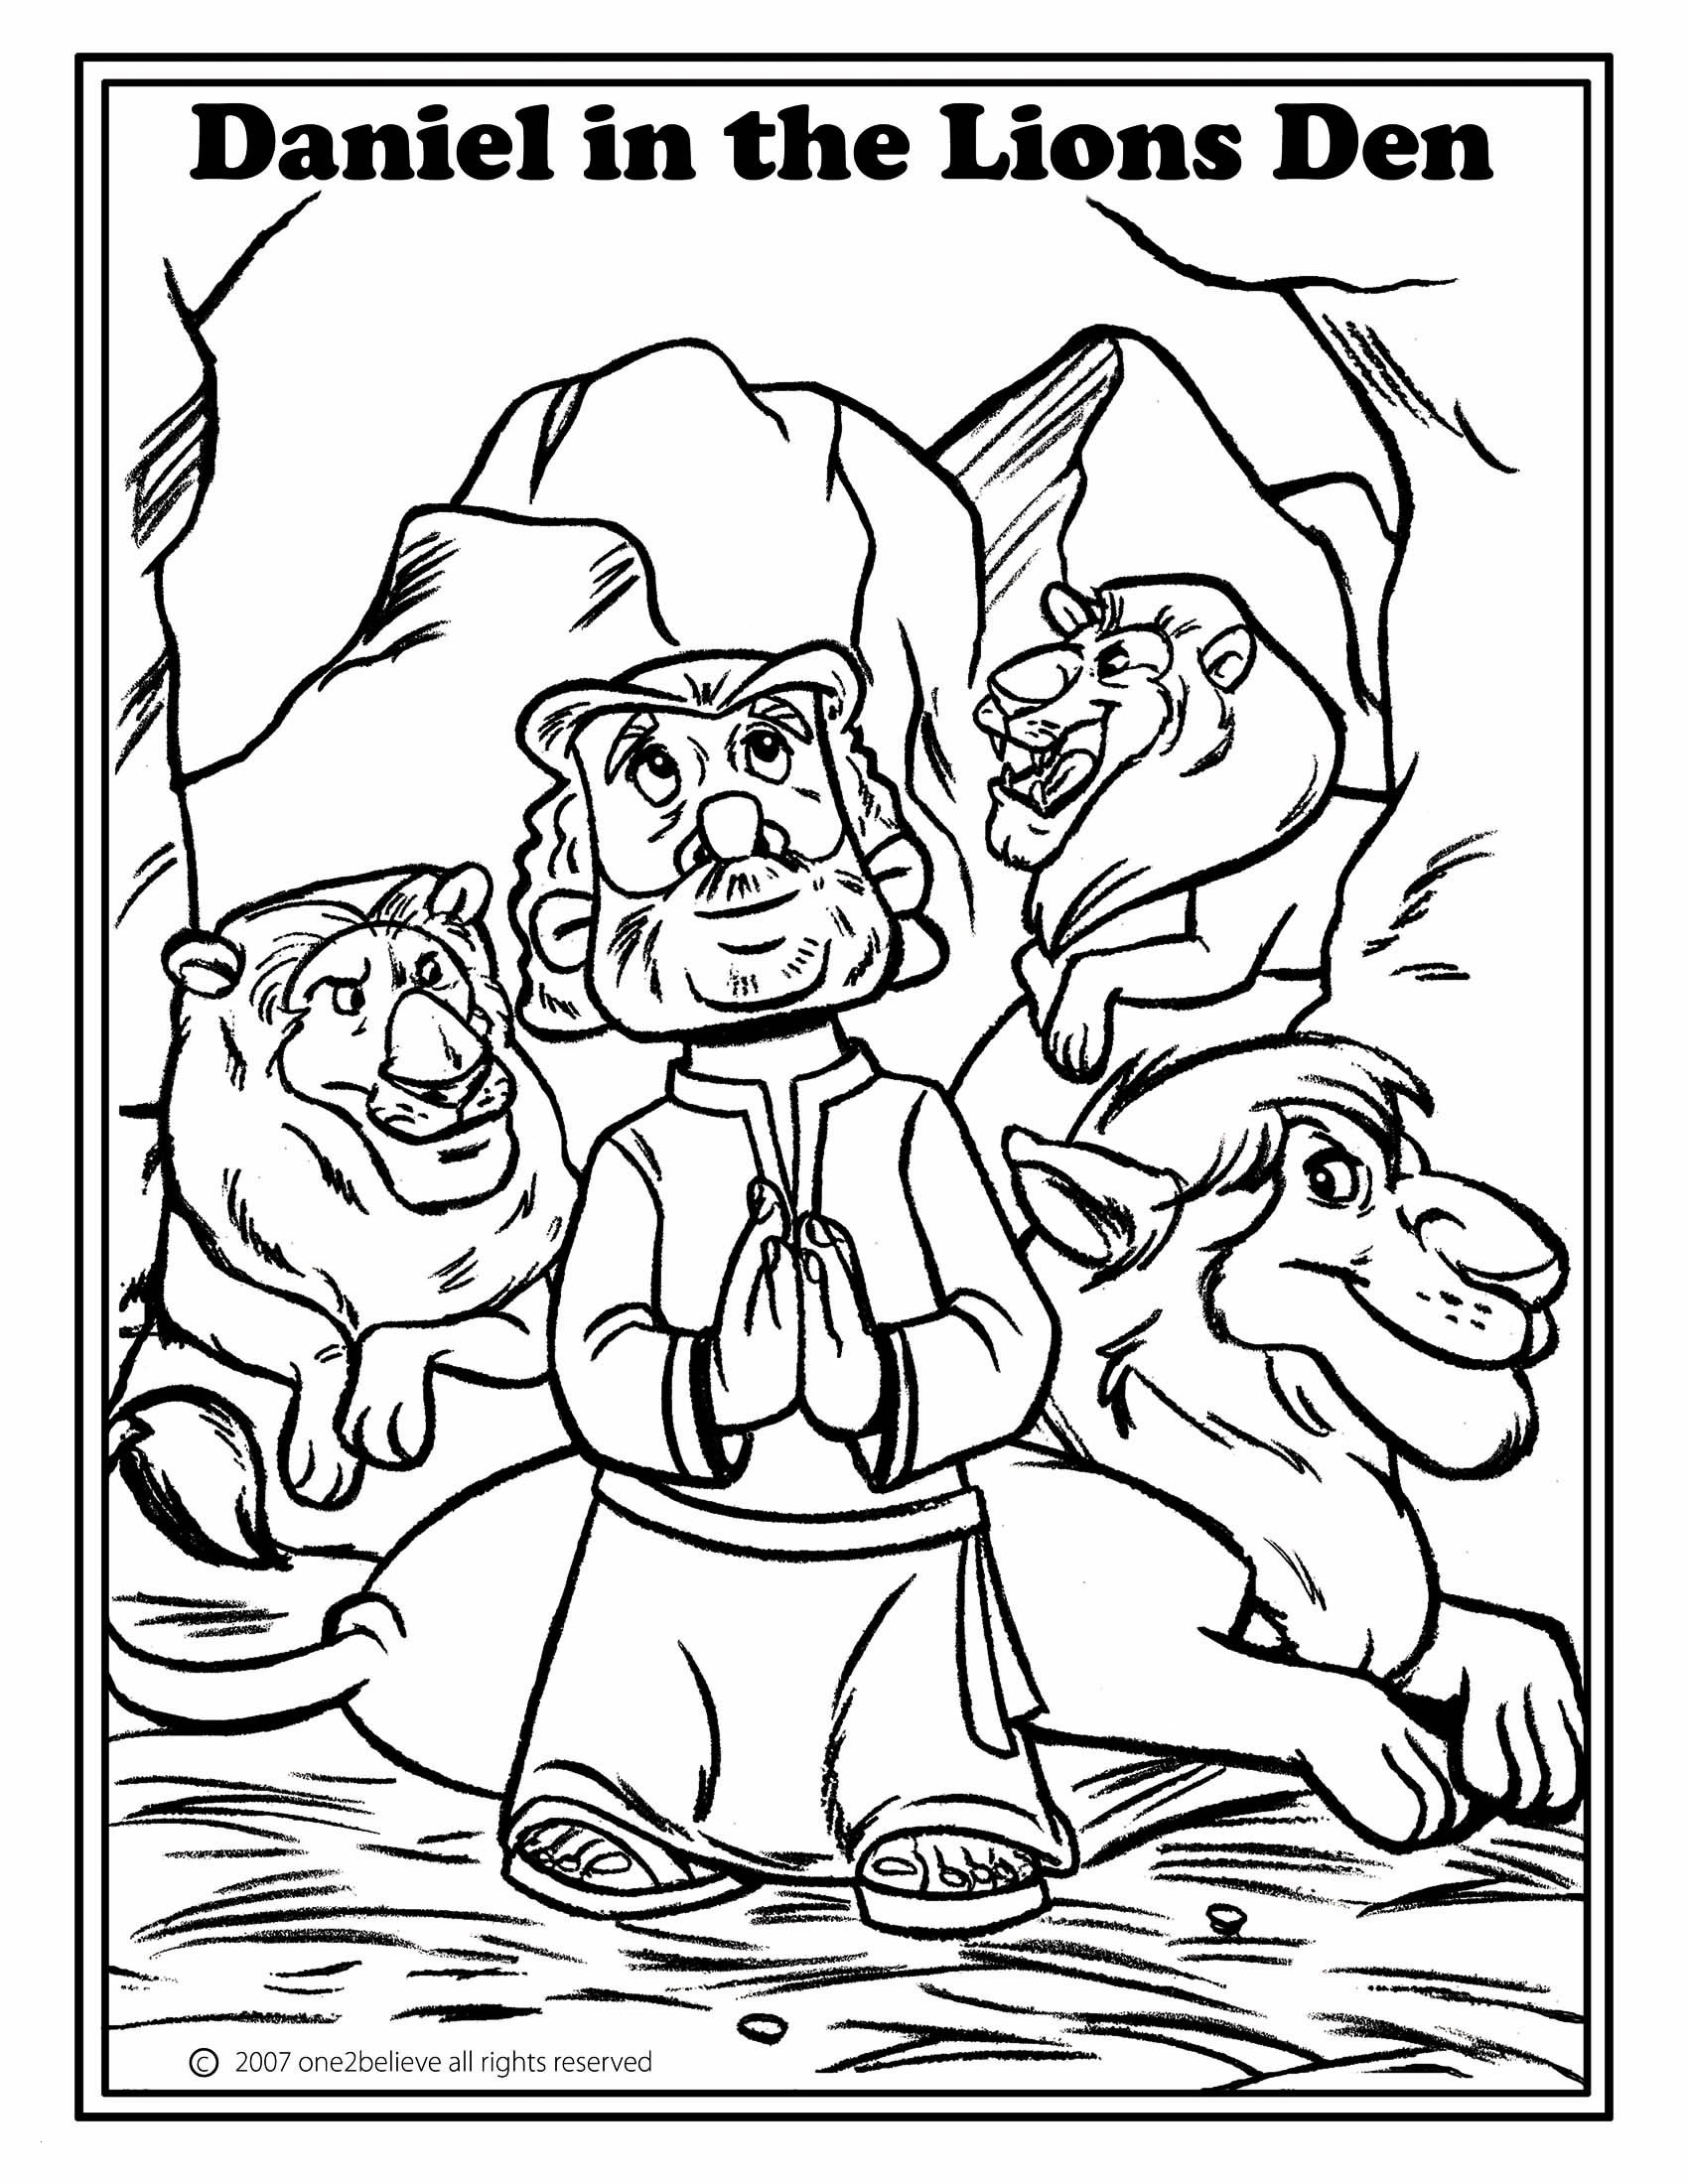 Cain and Abel Coloring Pages  to Print 7d - Free For kids